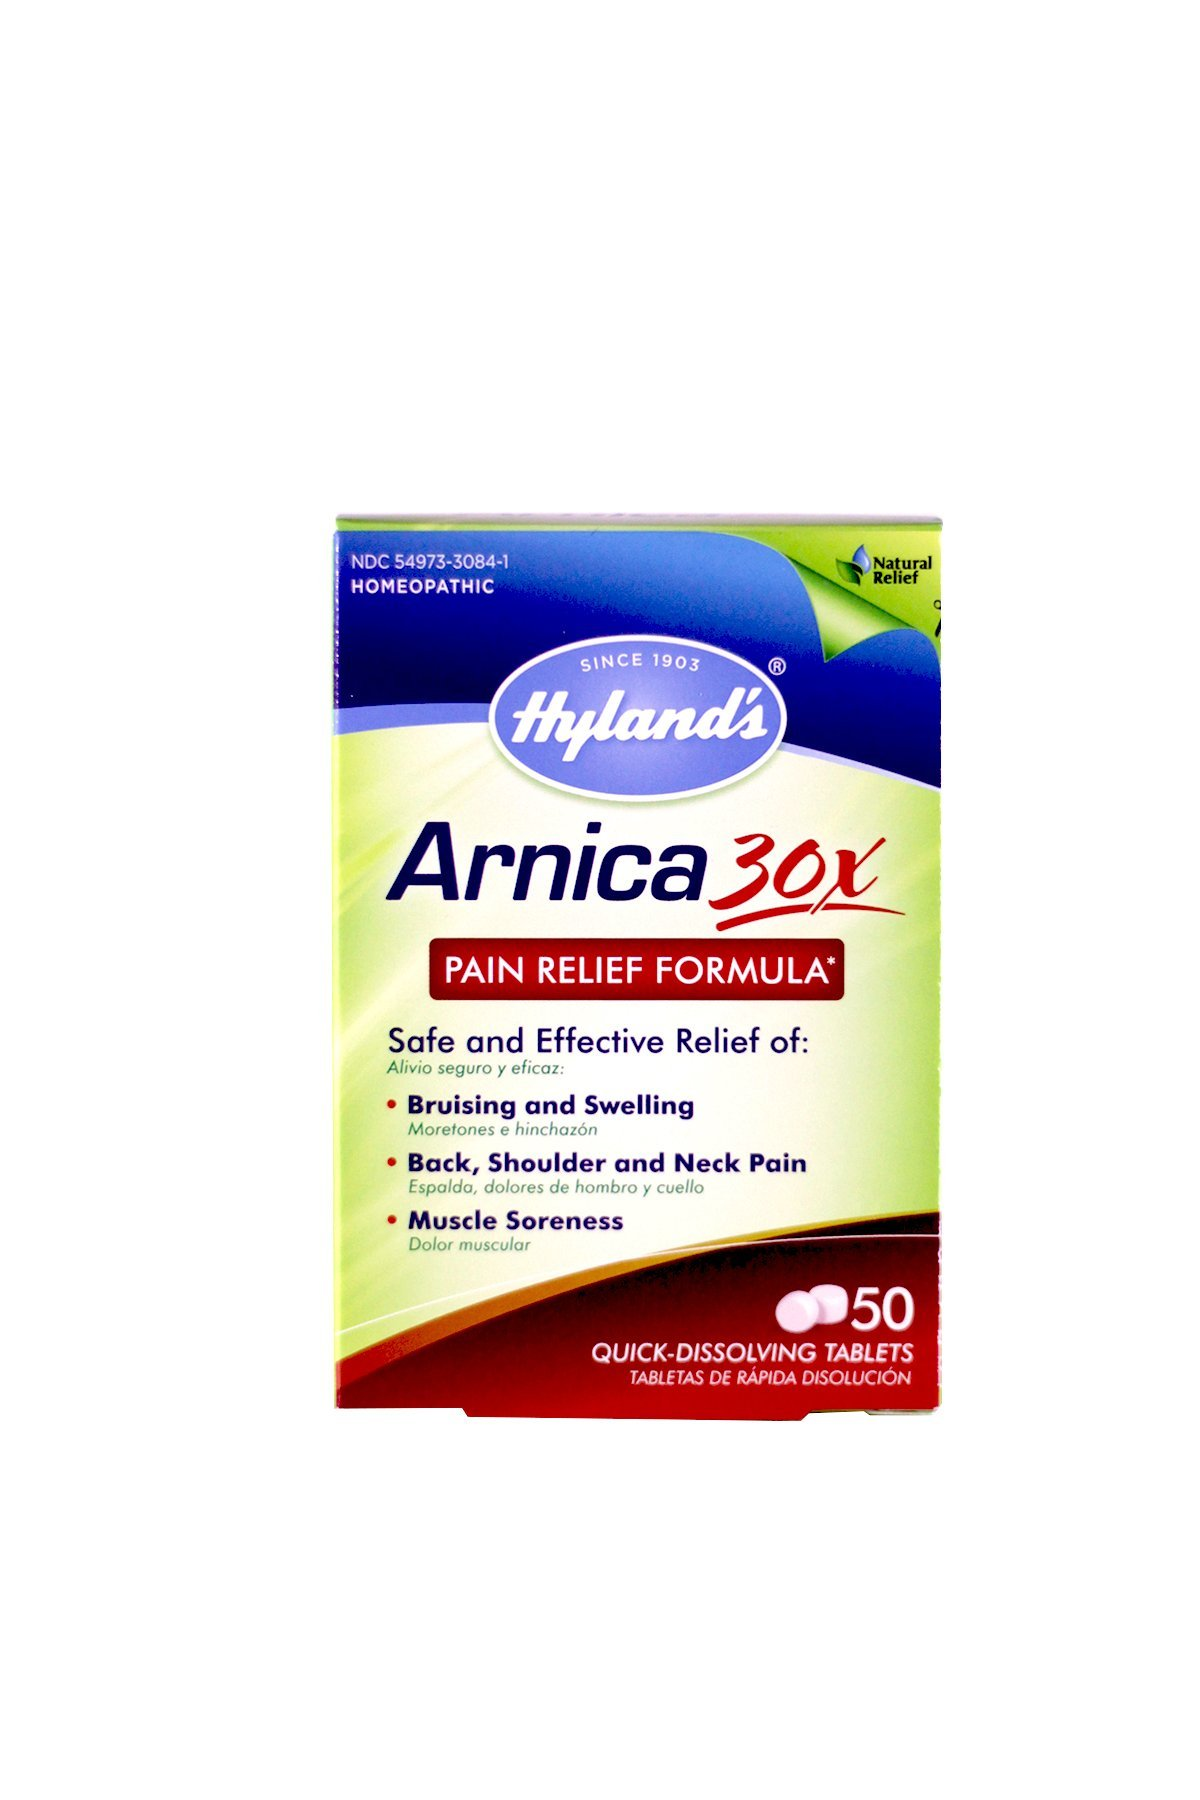 Hyland's Arnica Tablets 30X, Natural Homeopathic Bruising and Pain Relief, 50 Count (Pack of 6)